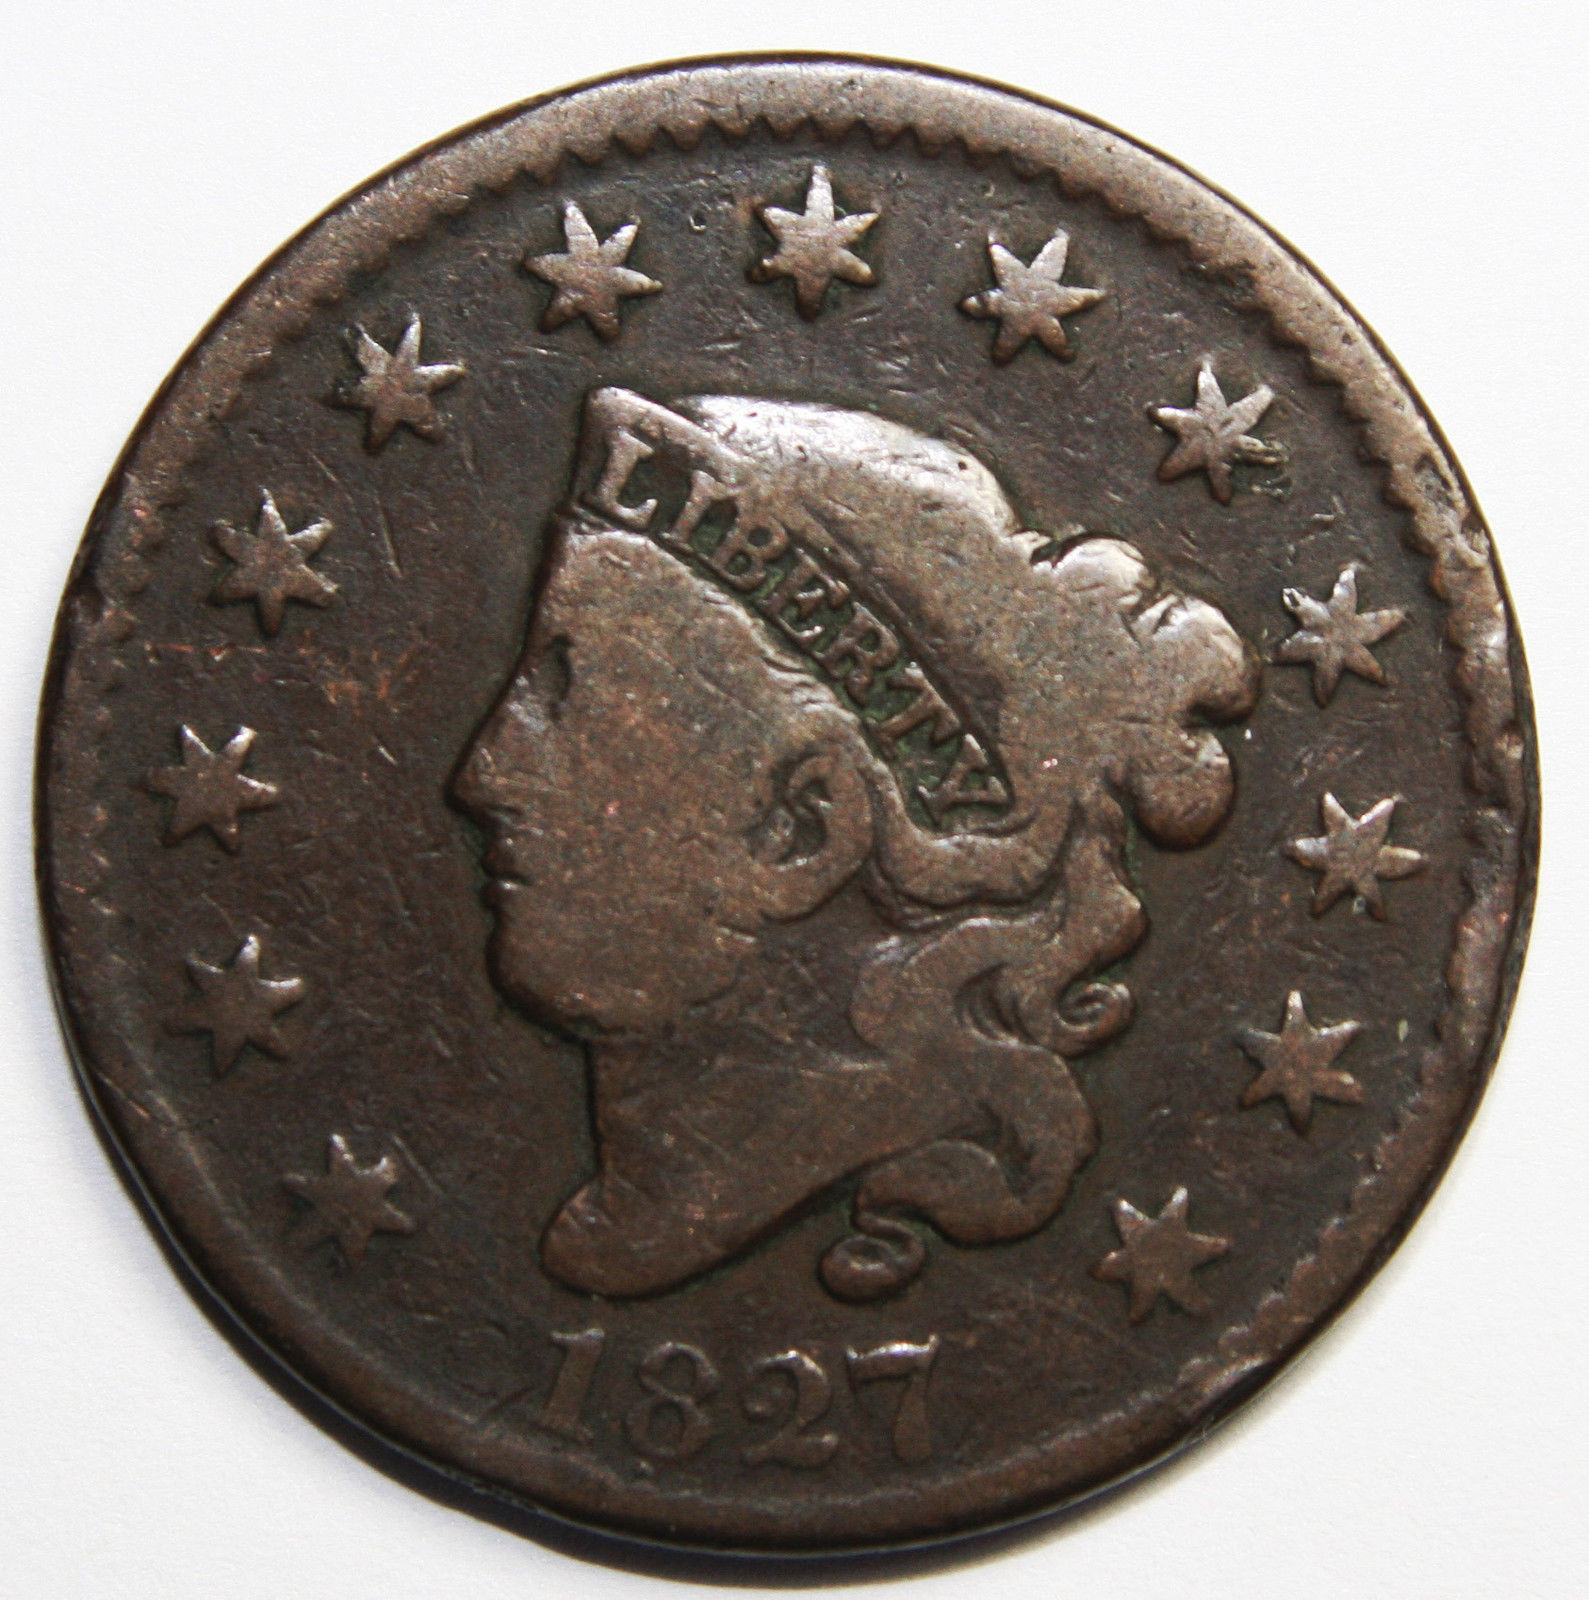 1827 Large Cent Liberty Coronet Head Coin Lot # MZ 4088